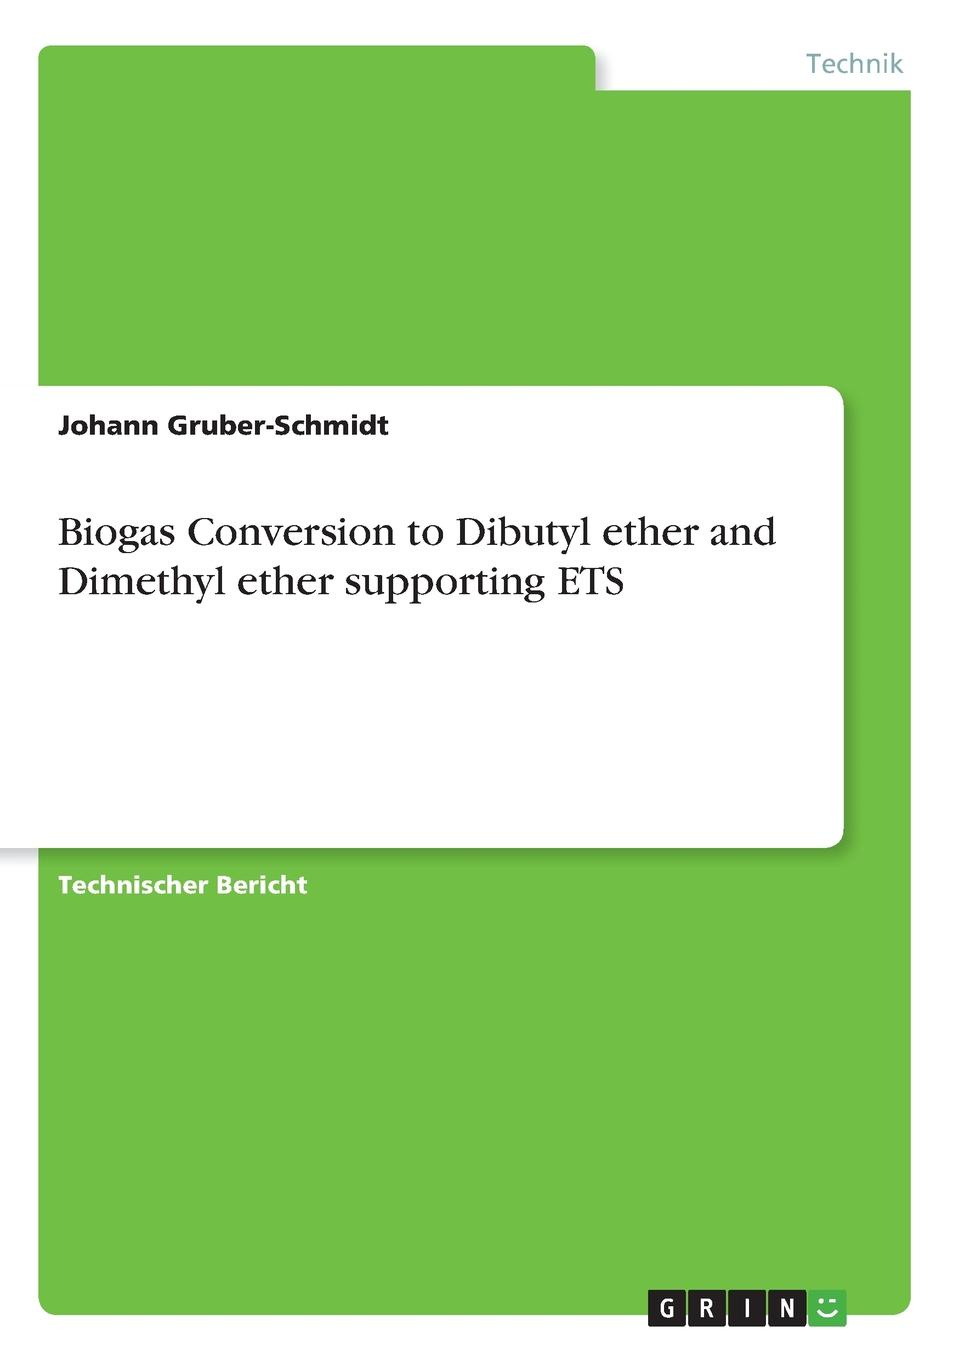 лучшая цена Johann Gruber-Schmidt Biogas Conversion to Dibutyl ether and Dimethyl ether supporting ETS